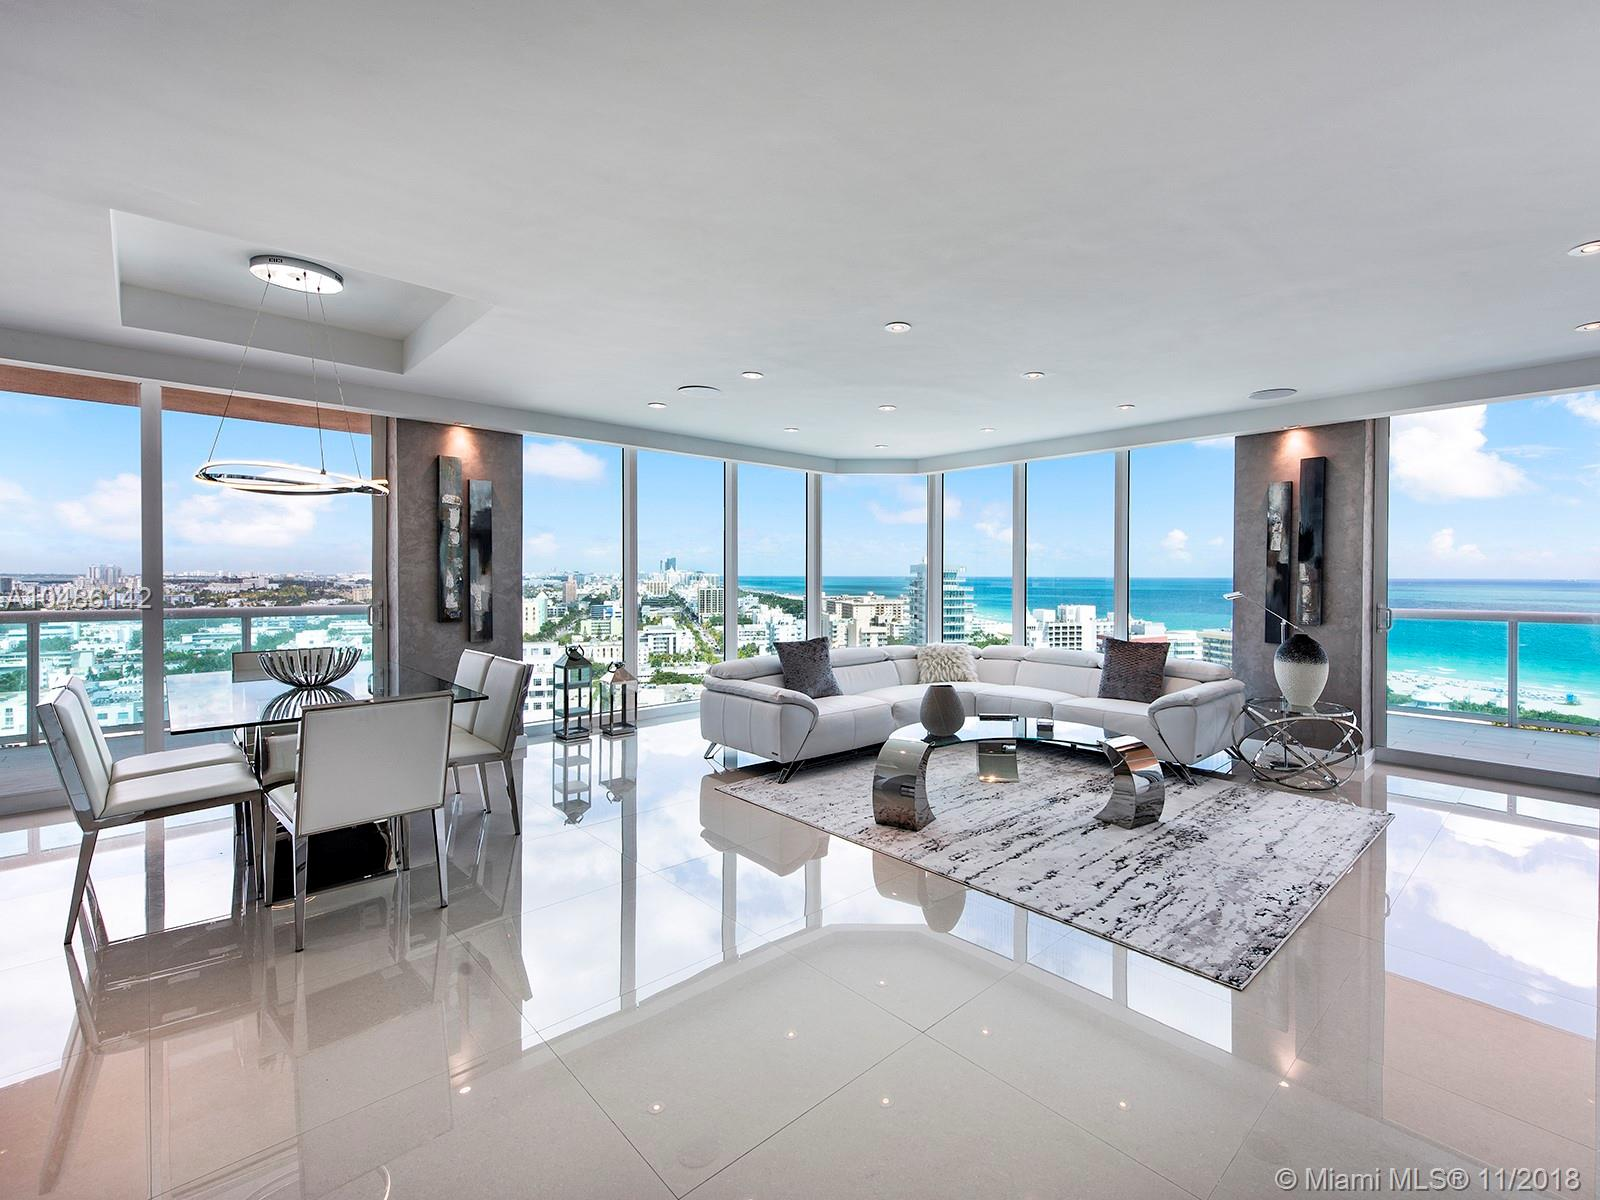 Stunning 3 bedroom in Portofino Tower South of 5th. Spectacular views of the Ocean, South Beach, Government Cut and the Miami Skyline. Be the first to enjoy the beautiful brand new renovations featuring an eat-in kitchen with floor to ceiling windows, fabulous master suite with an gorgeous master bath, lots of closet space, custom lighting, sound system, electric blinds and two large terraces, laundry room. There's a fantastic gym and full service spa on the 29th floor, concierge service, valet, 2 pools, 2 tennis courts and onsite management. Enjoy the South of 5th lifestyle with the ocean, marina, park and the best of restaurants all in your back yard.